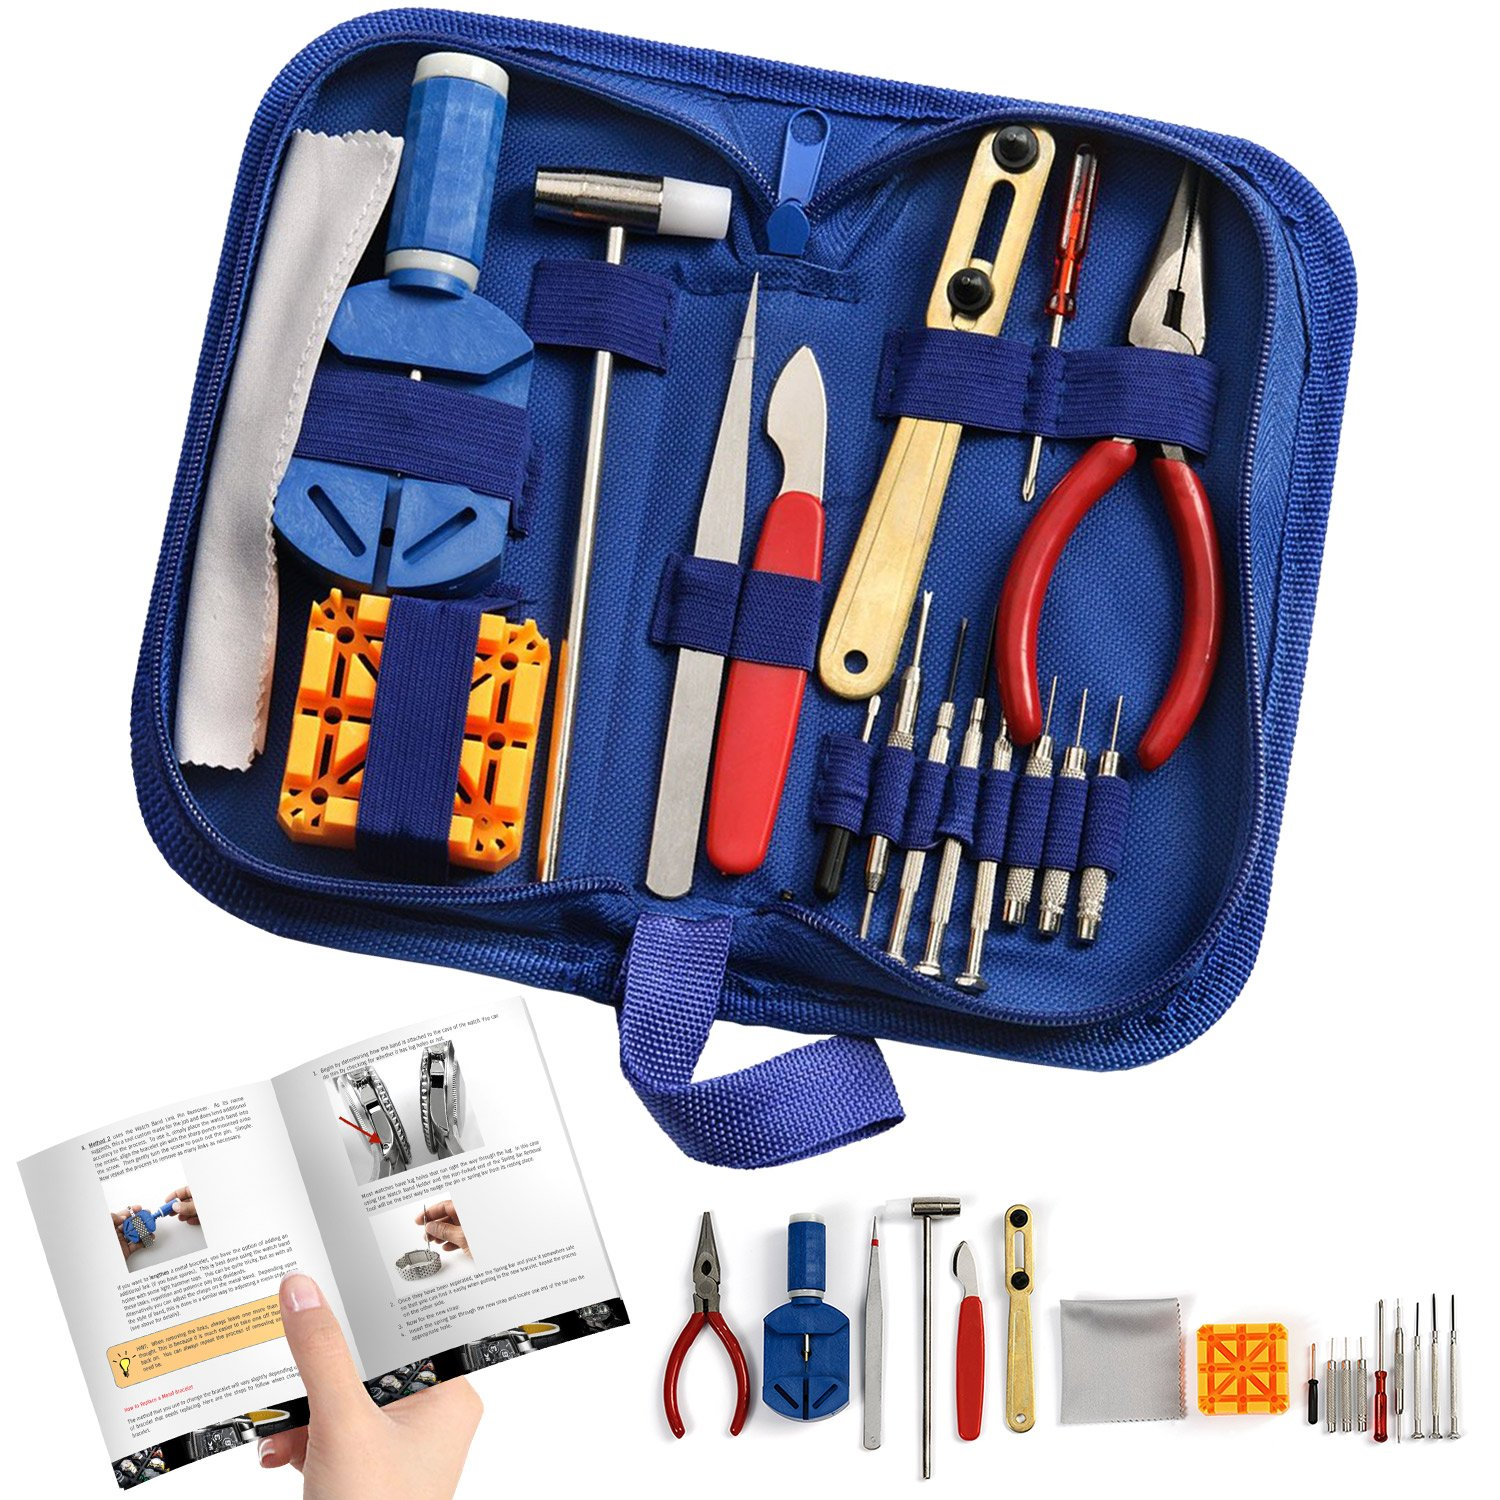 Watch Repair Kit Professional - Complete Tool Set with Watchmaker's and Jewelers ''Maintenance & Service'' User Manual - Storage Case - Microfibre Cleaning Towel (16 Pieces) by The Kit Shop